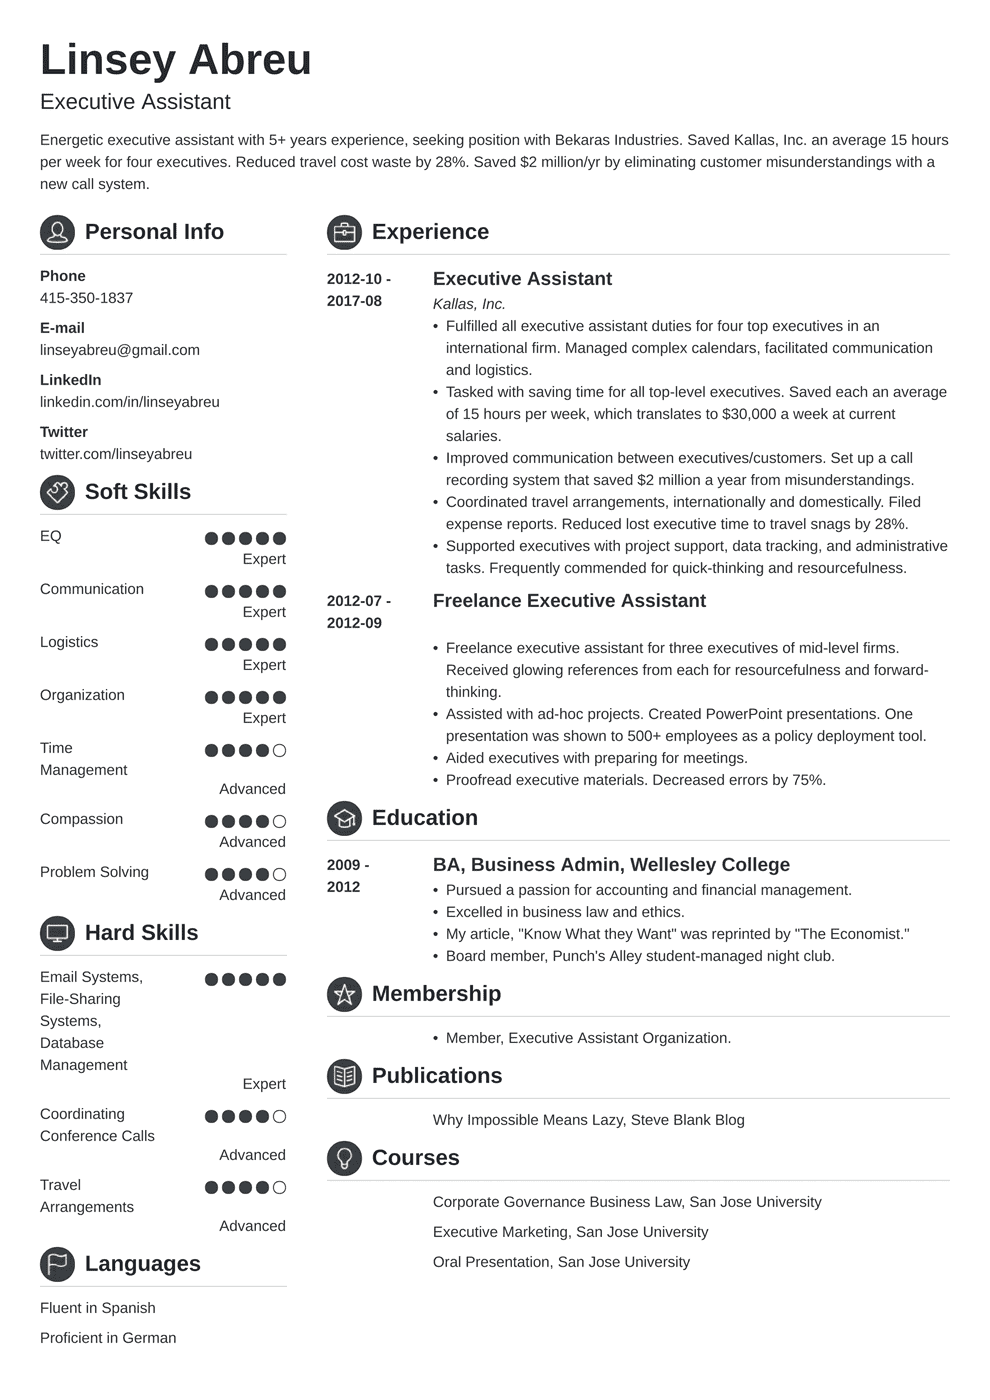 Executive Assistant Resume: Sample & Complete Guide [20+ ...